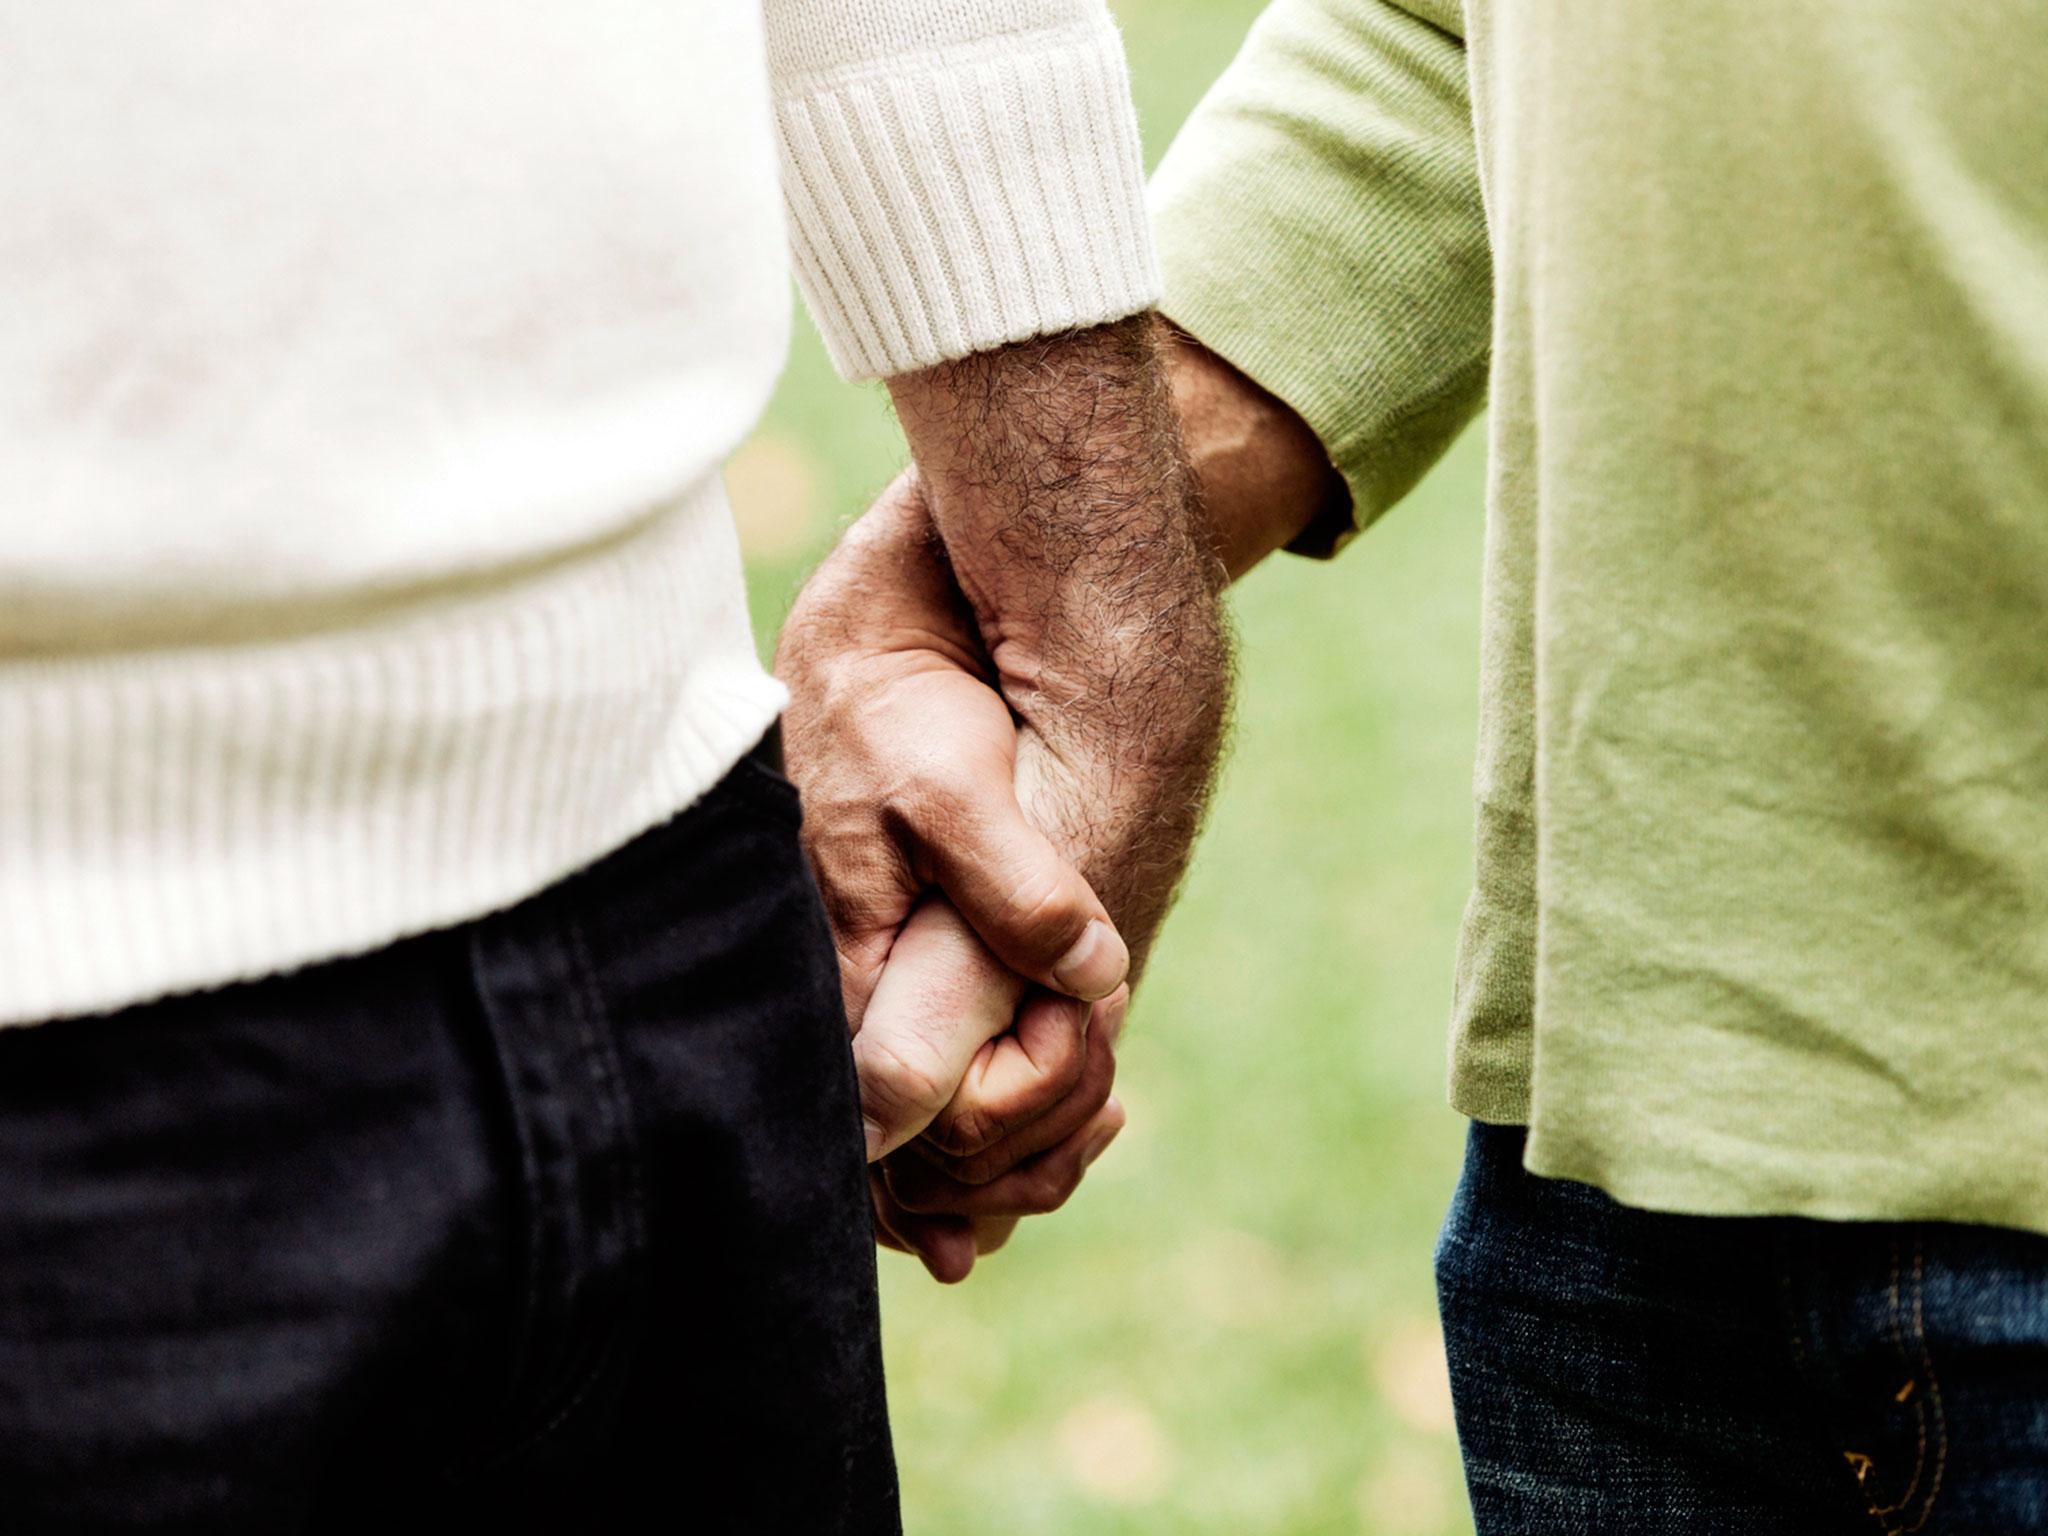 I live with my husband and my boyfriend – here's how we make polyamory work